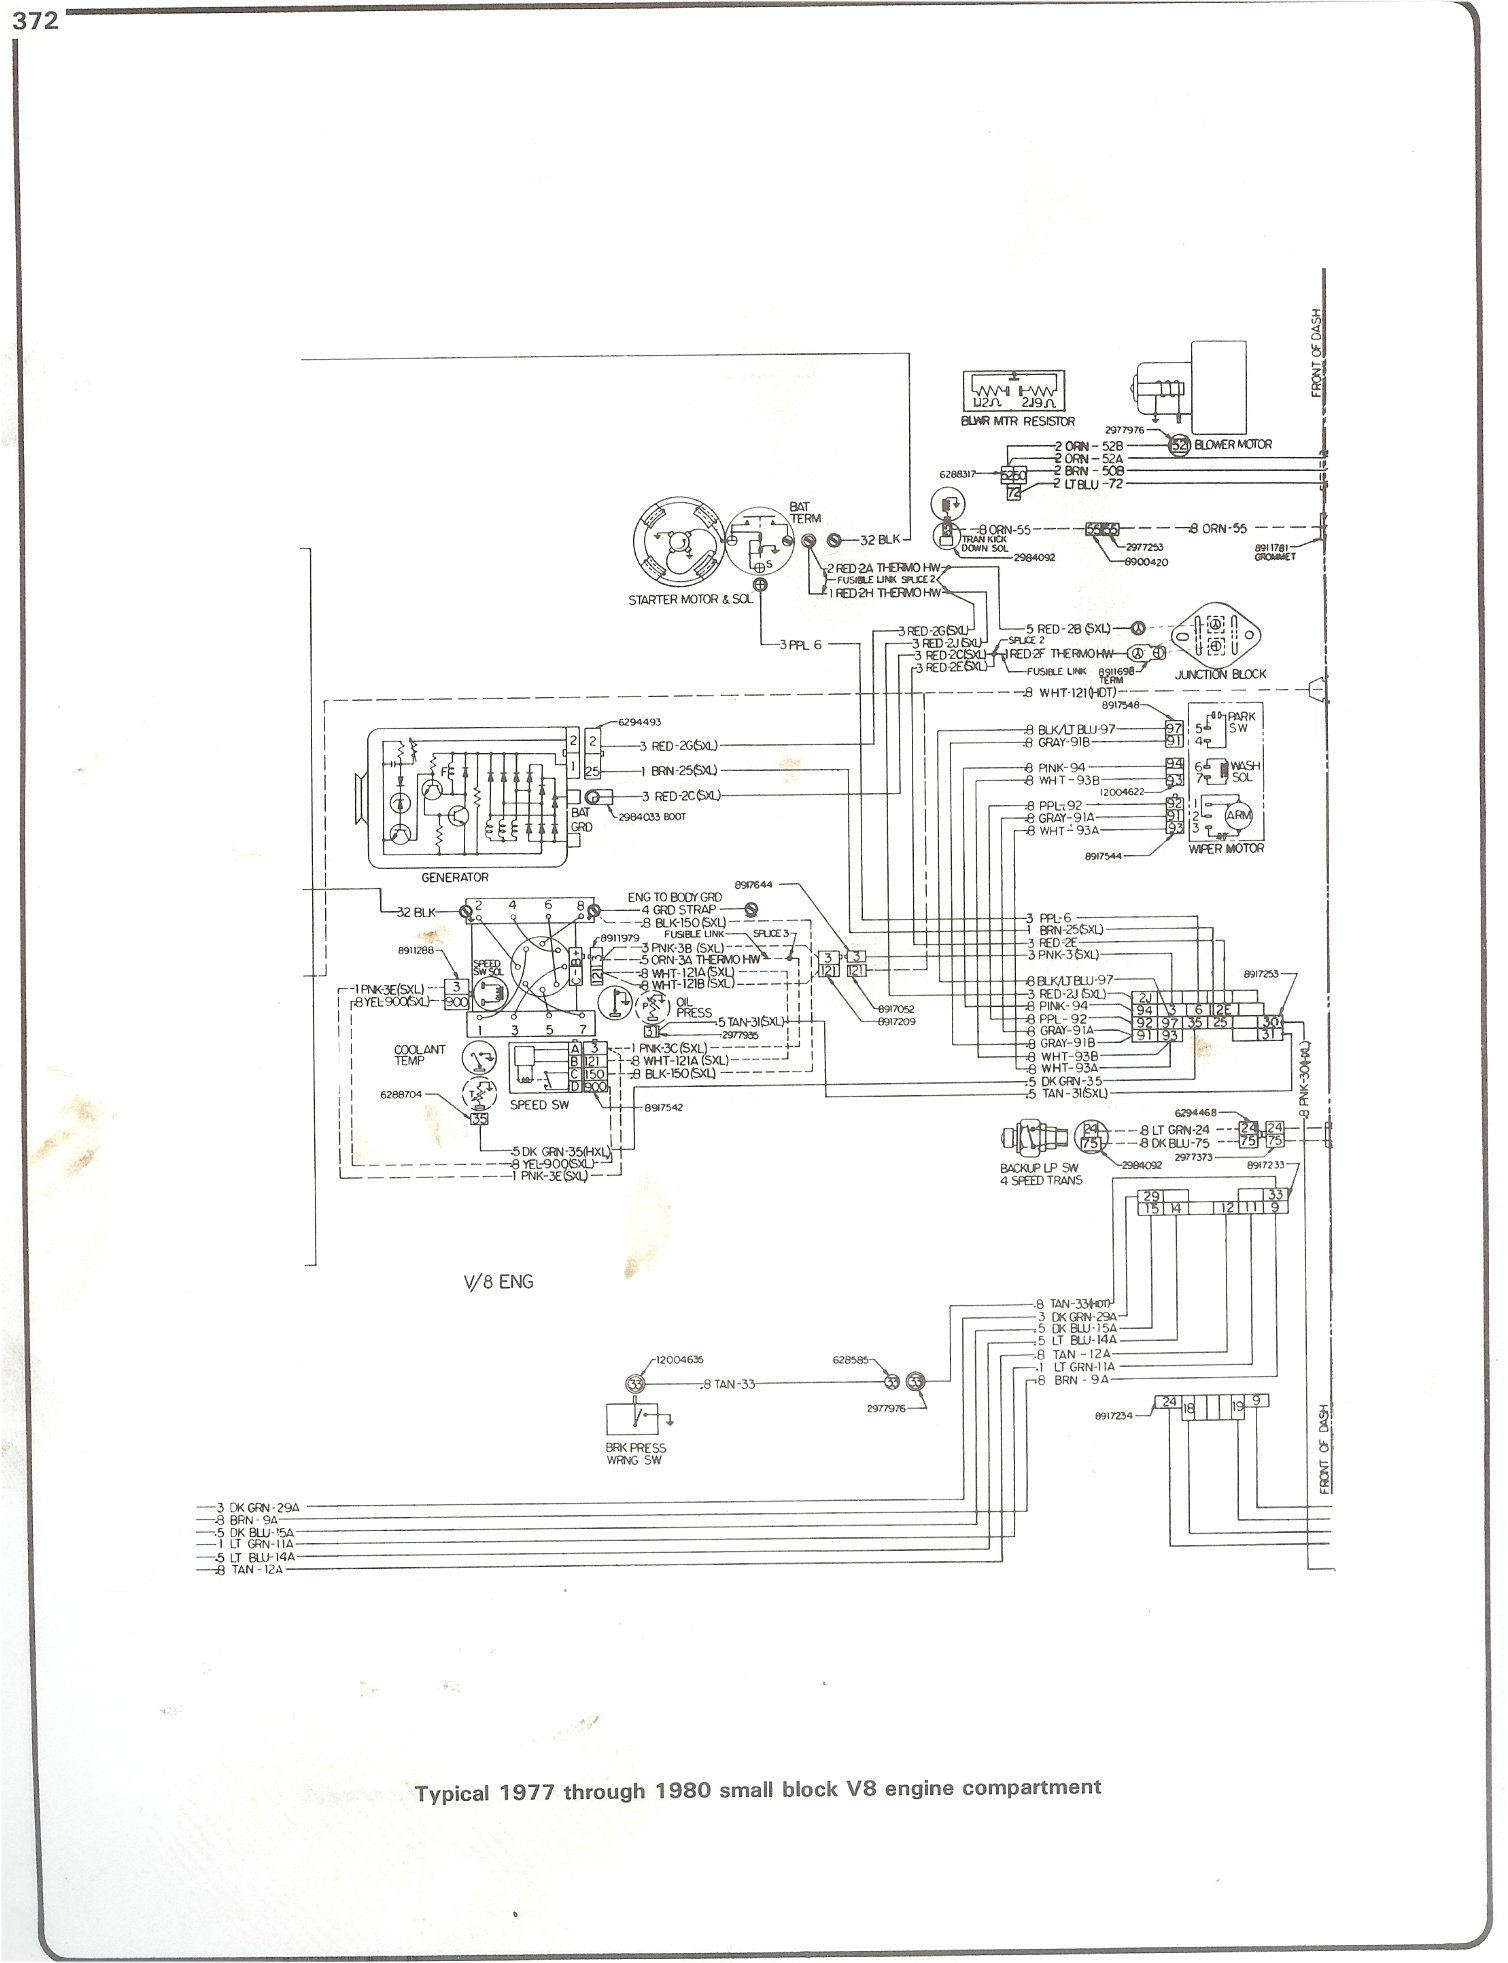 hight resolution of under hood wiring schematic for 1978 cheny blazer chevy international tractor wiring diagram international f1954 wiring diagrams